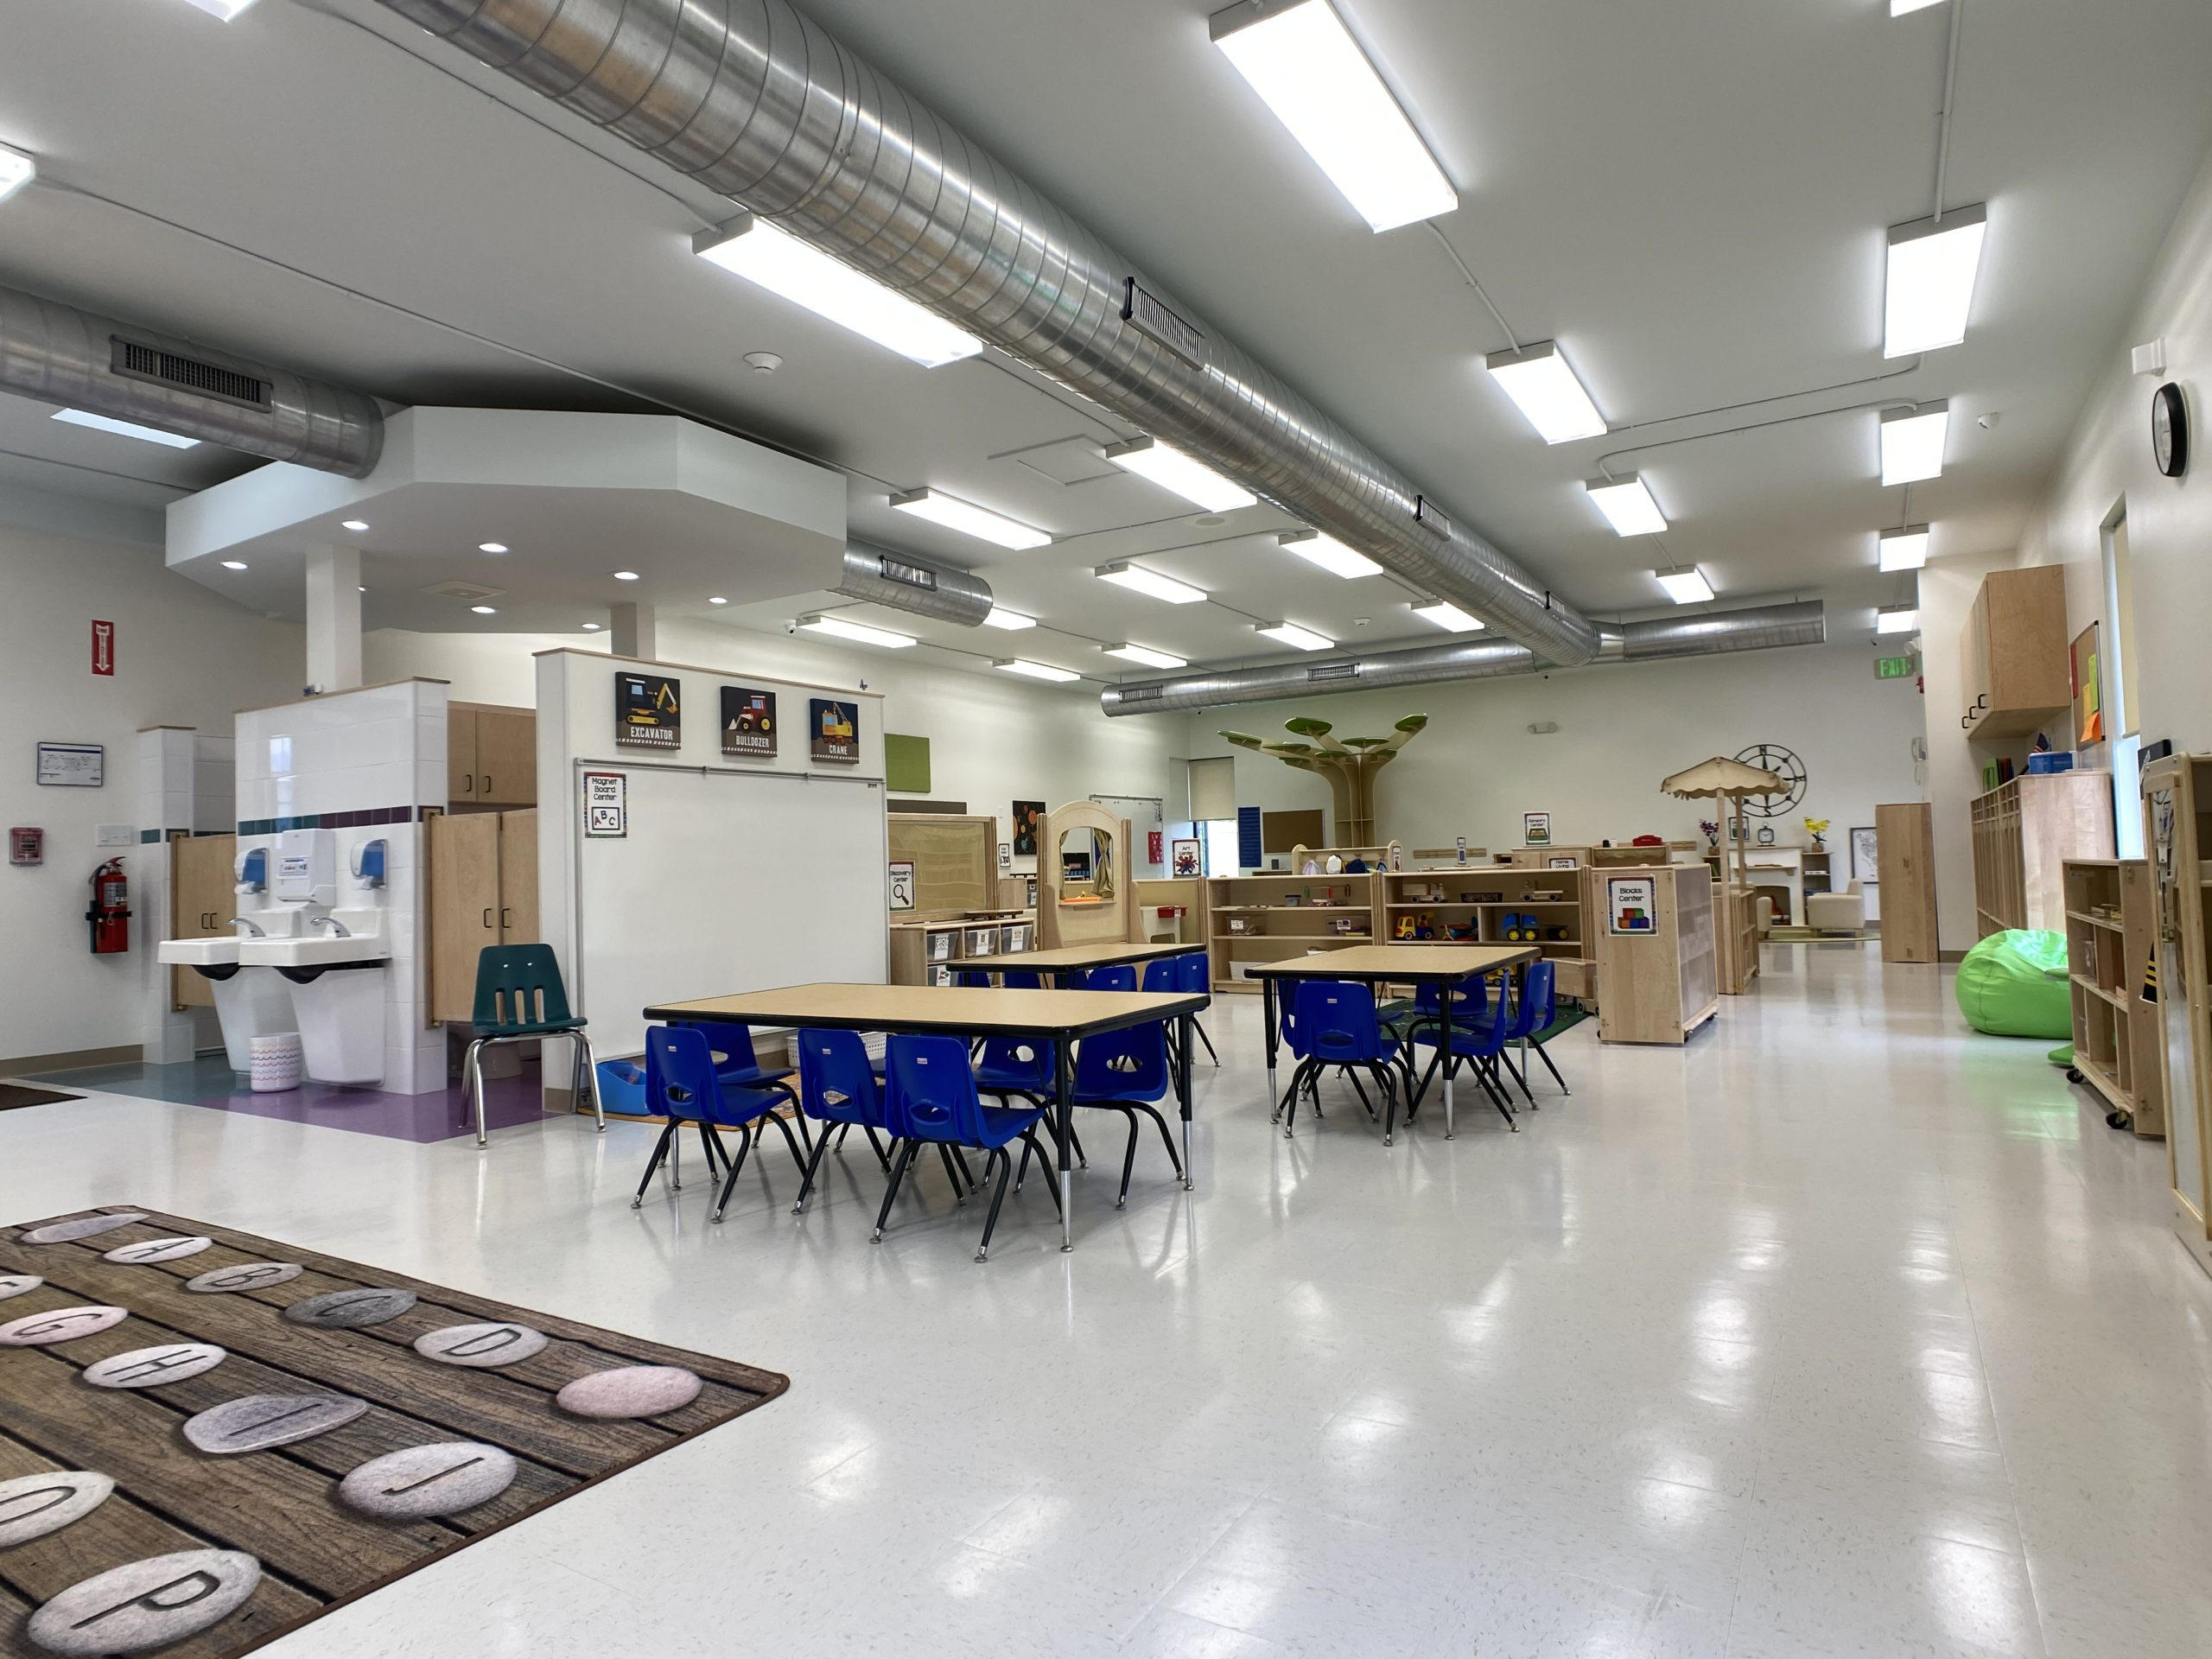 children's learning area - full space